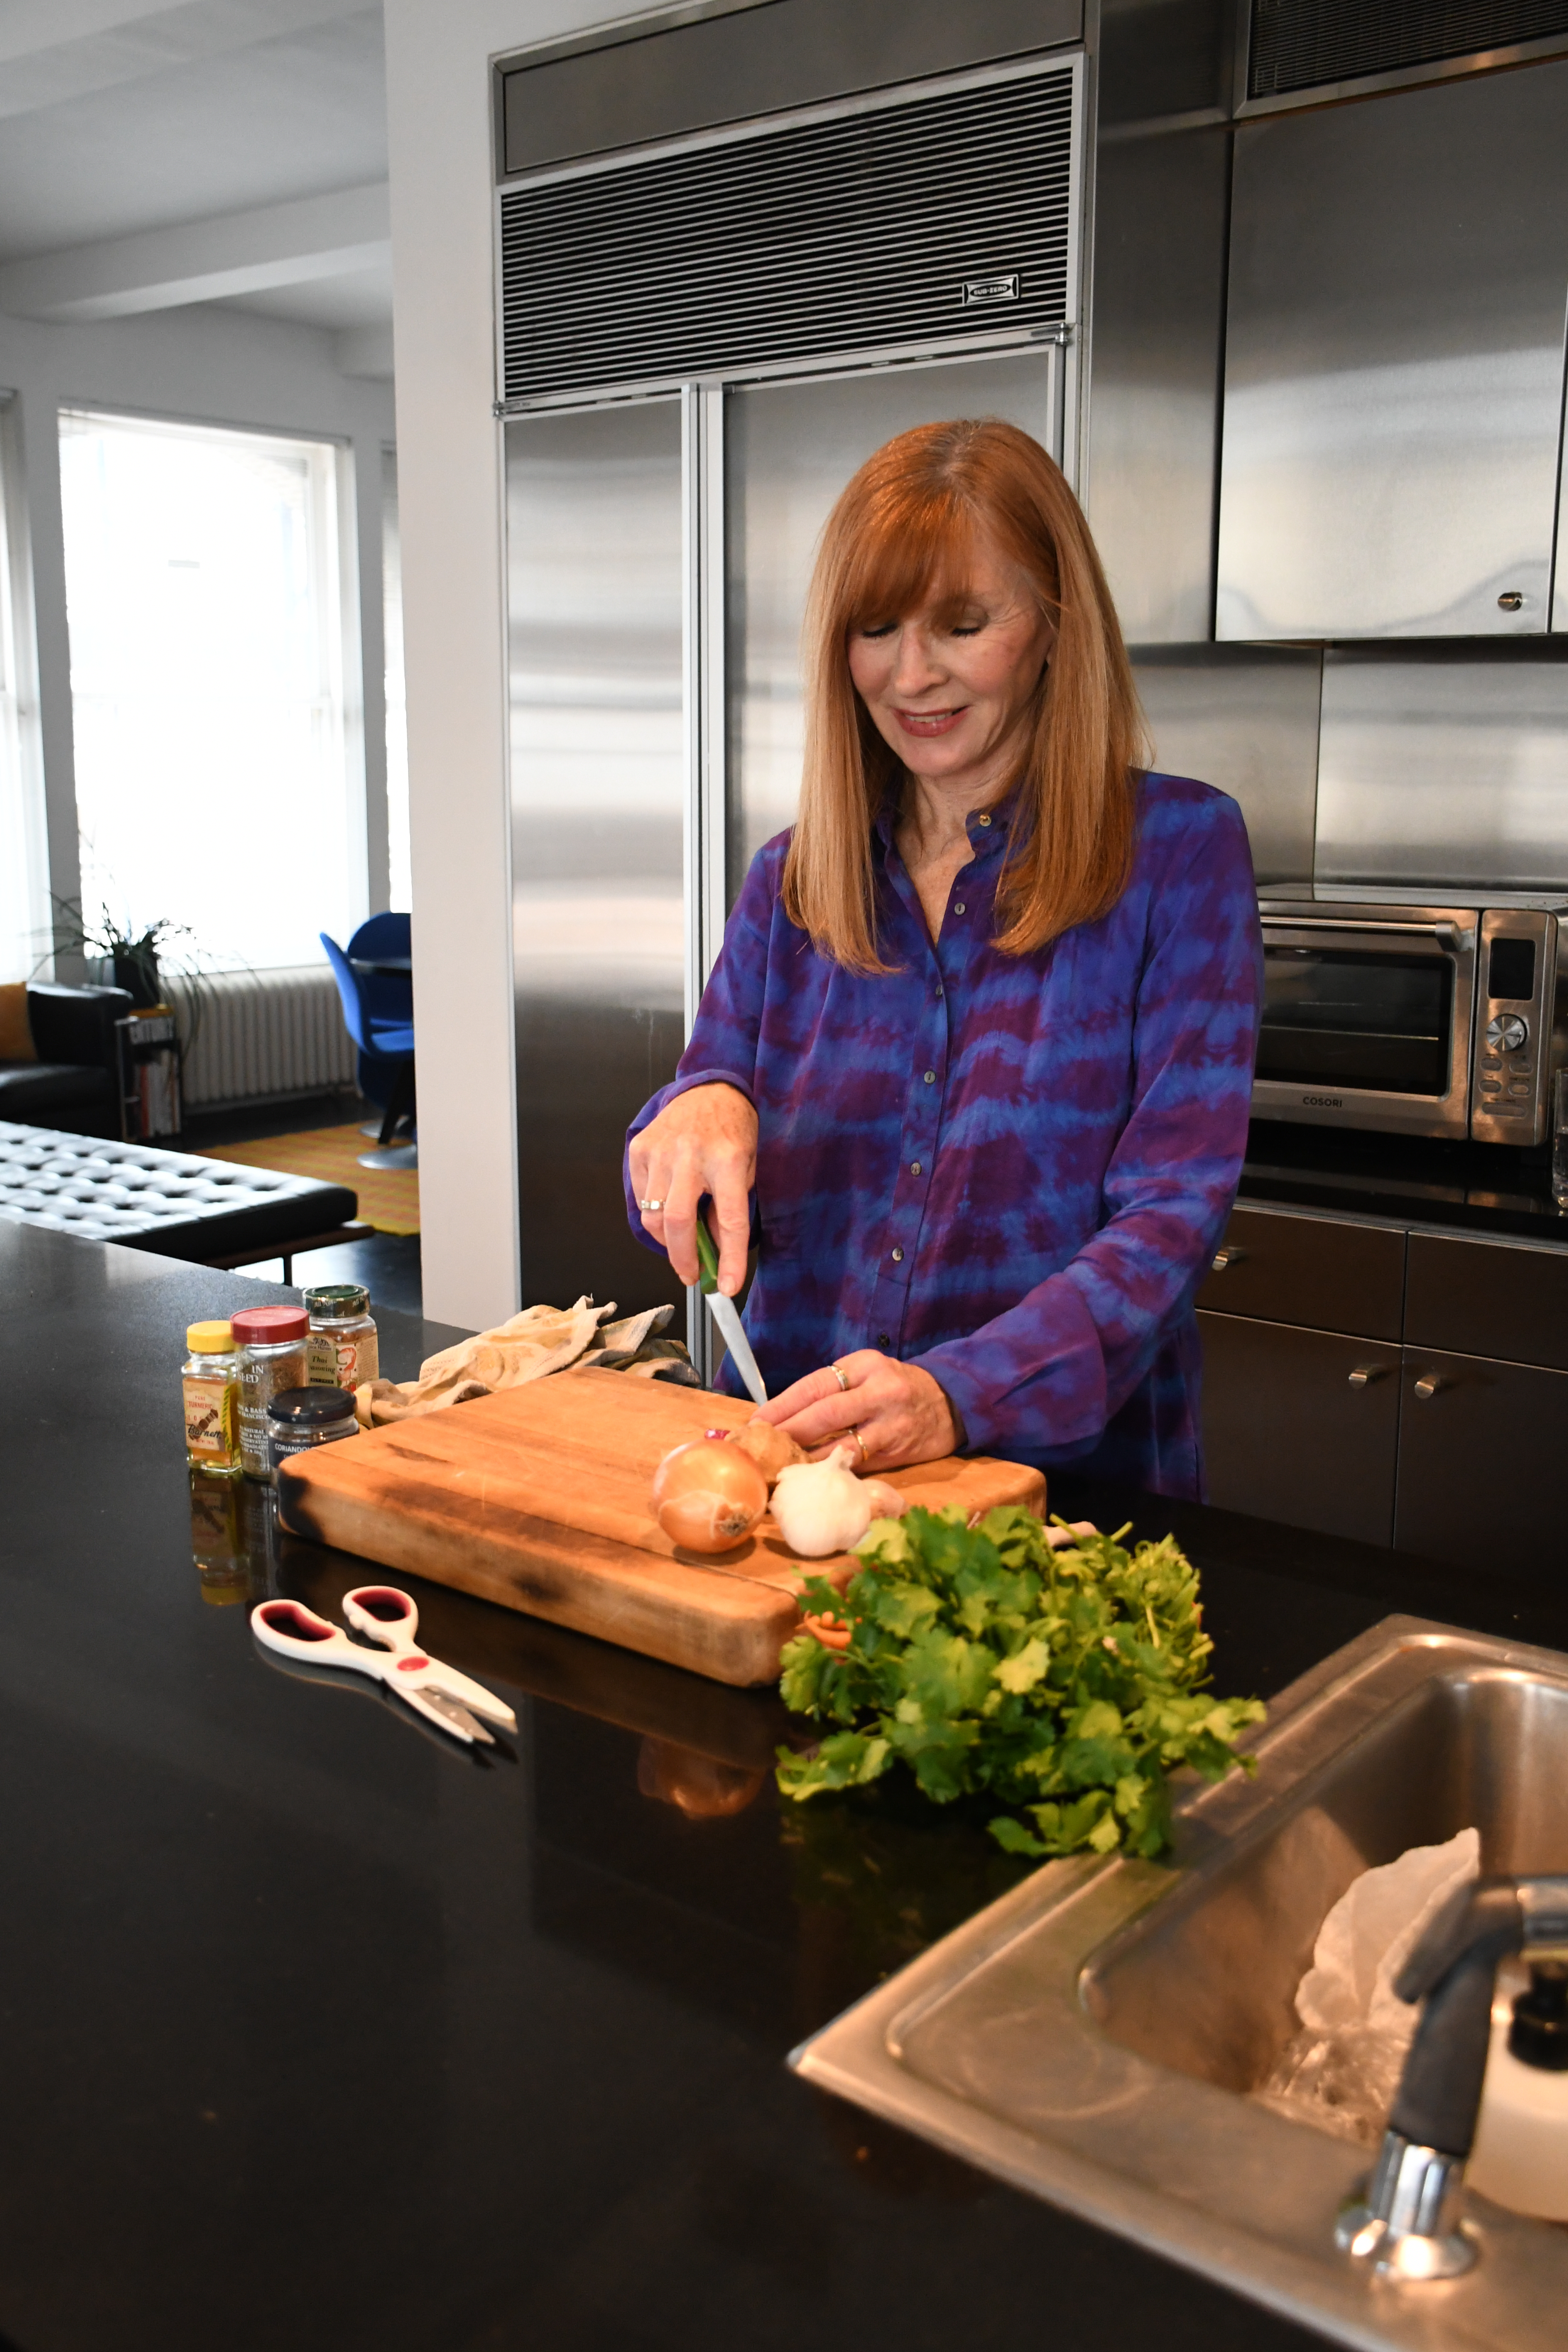 Nicole Miller is experimenting in the kitchen at home.